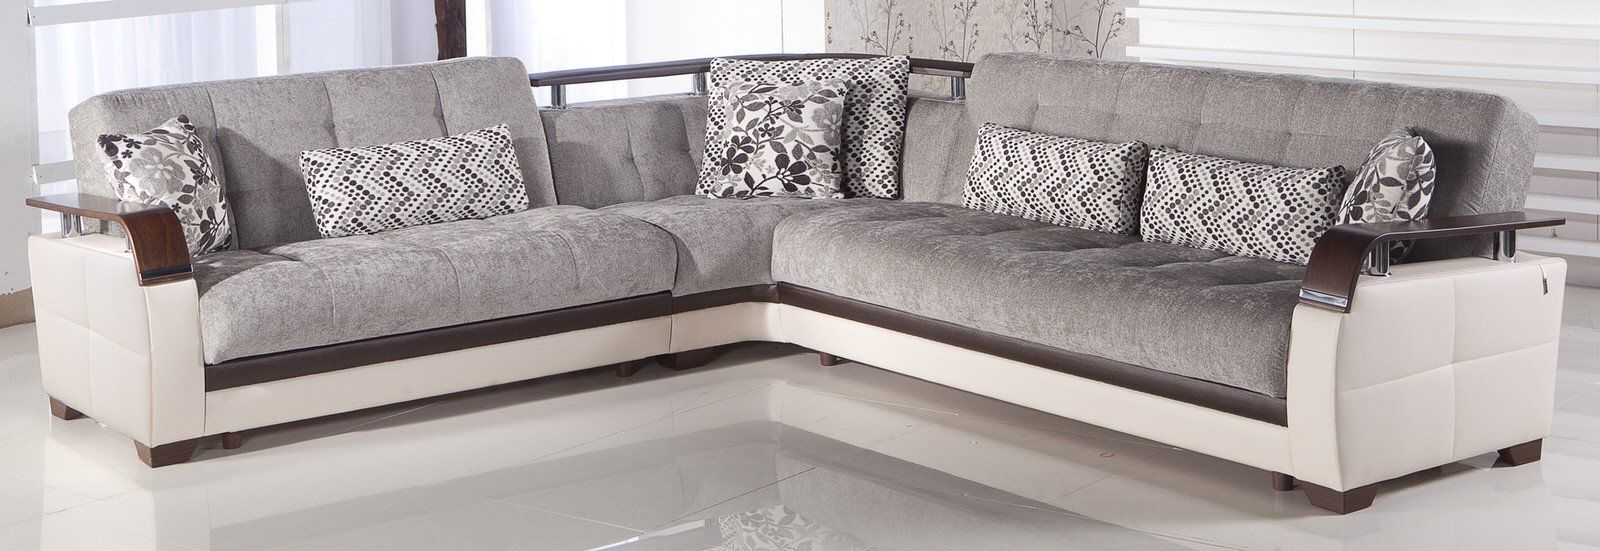 contemporary rooms to go sectional sofas construction-Incredible Rooms to Go Sectional sofas Décor